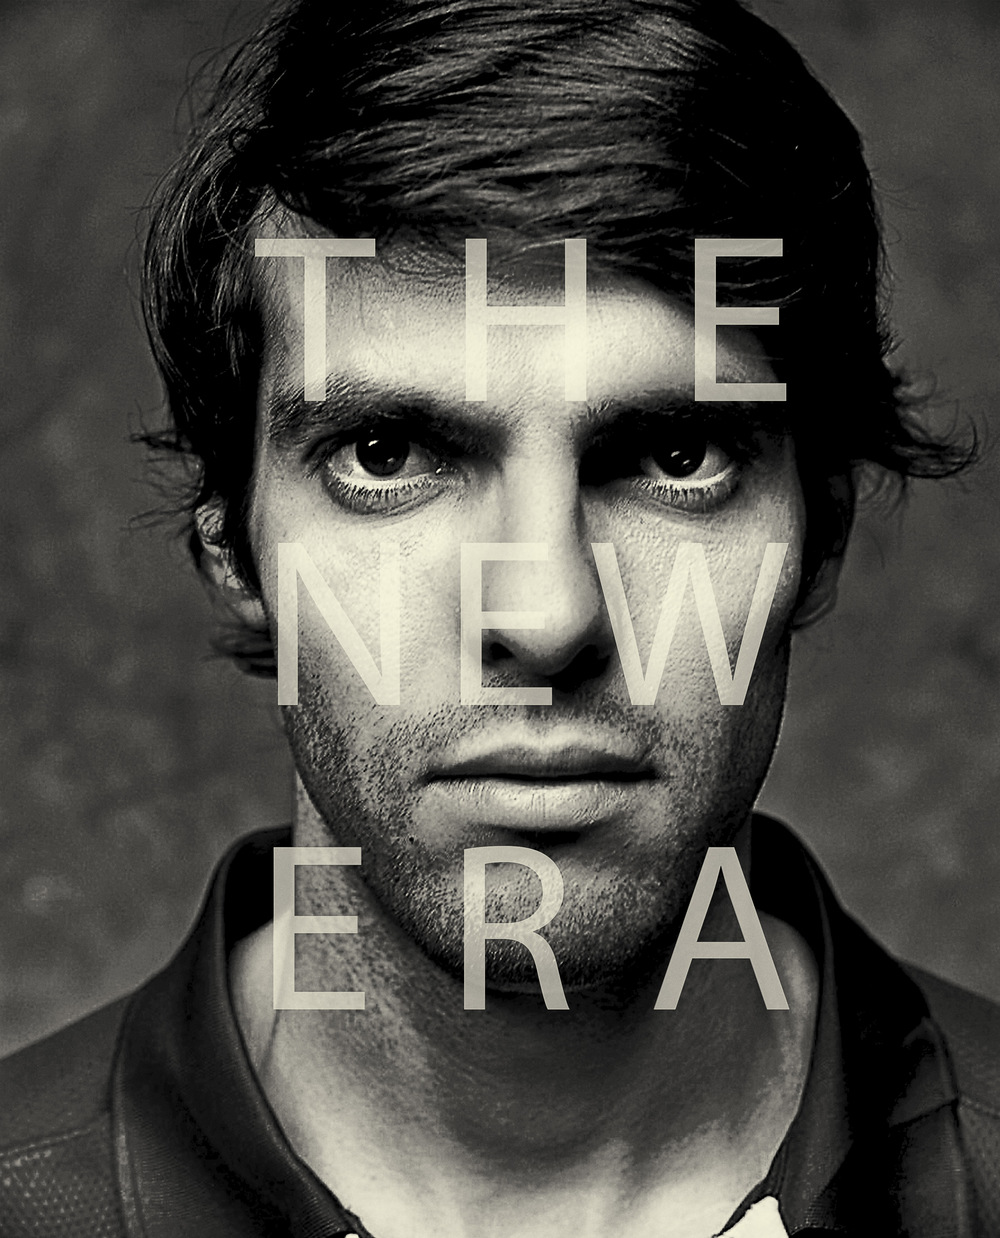 MLS ORLANDO CITY SOCCER CLUB PROGRAM GUIDE // KAKA